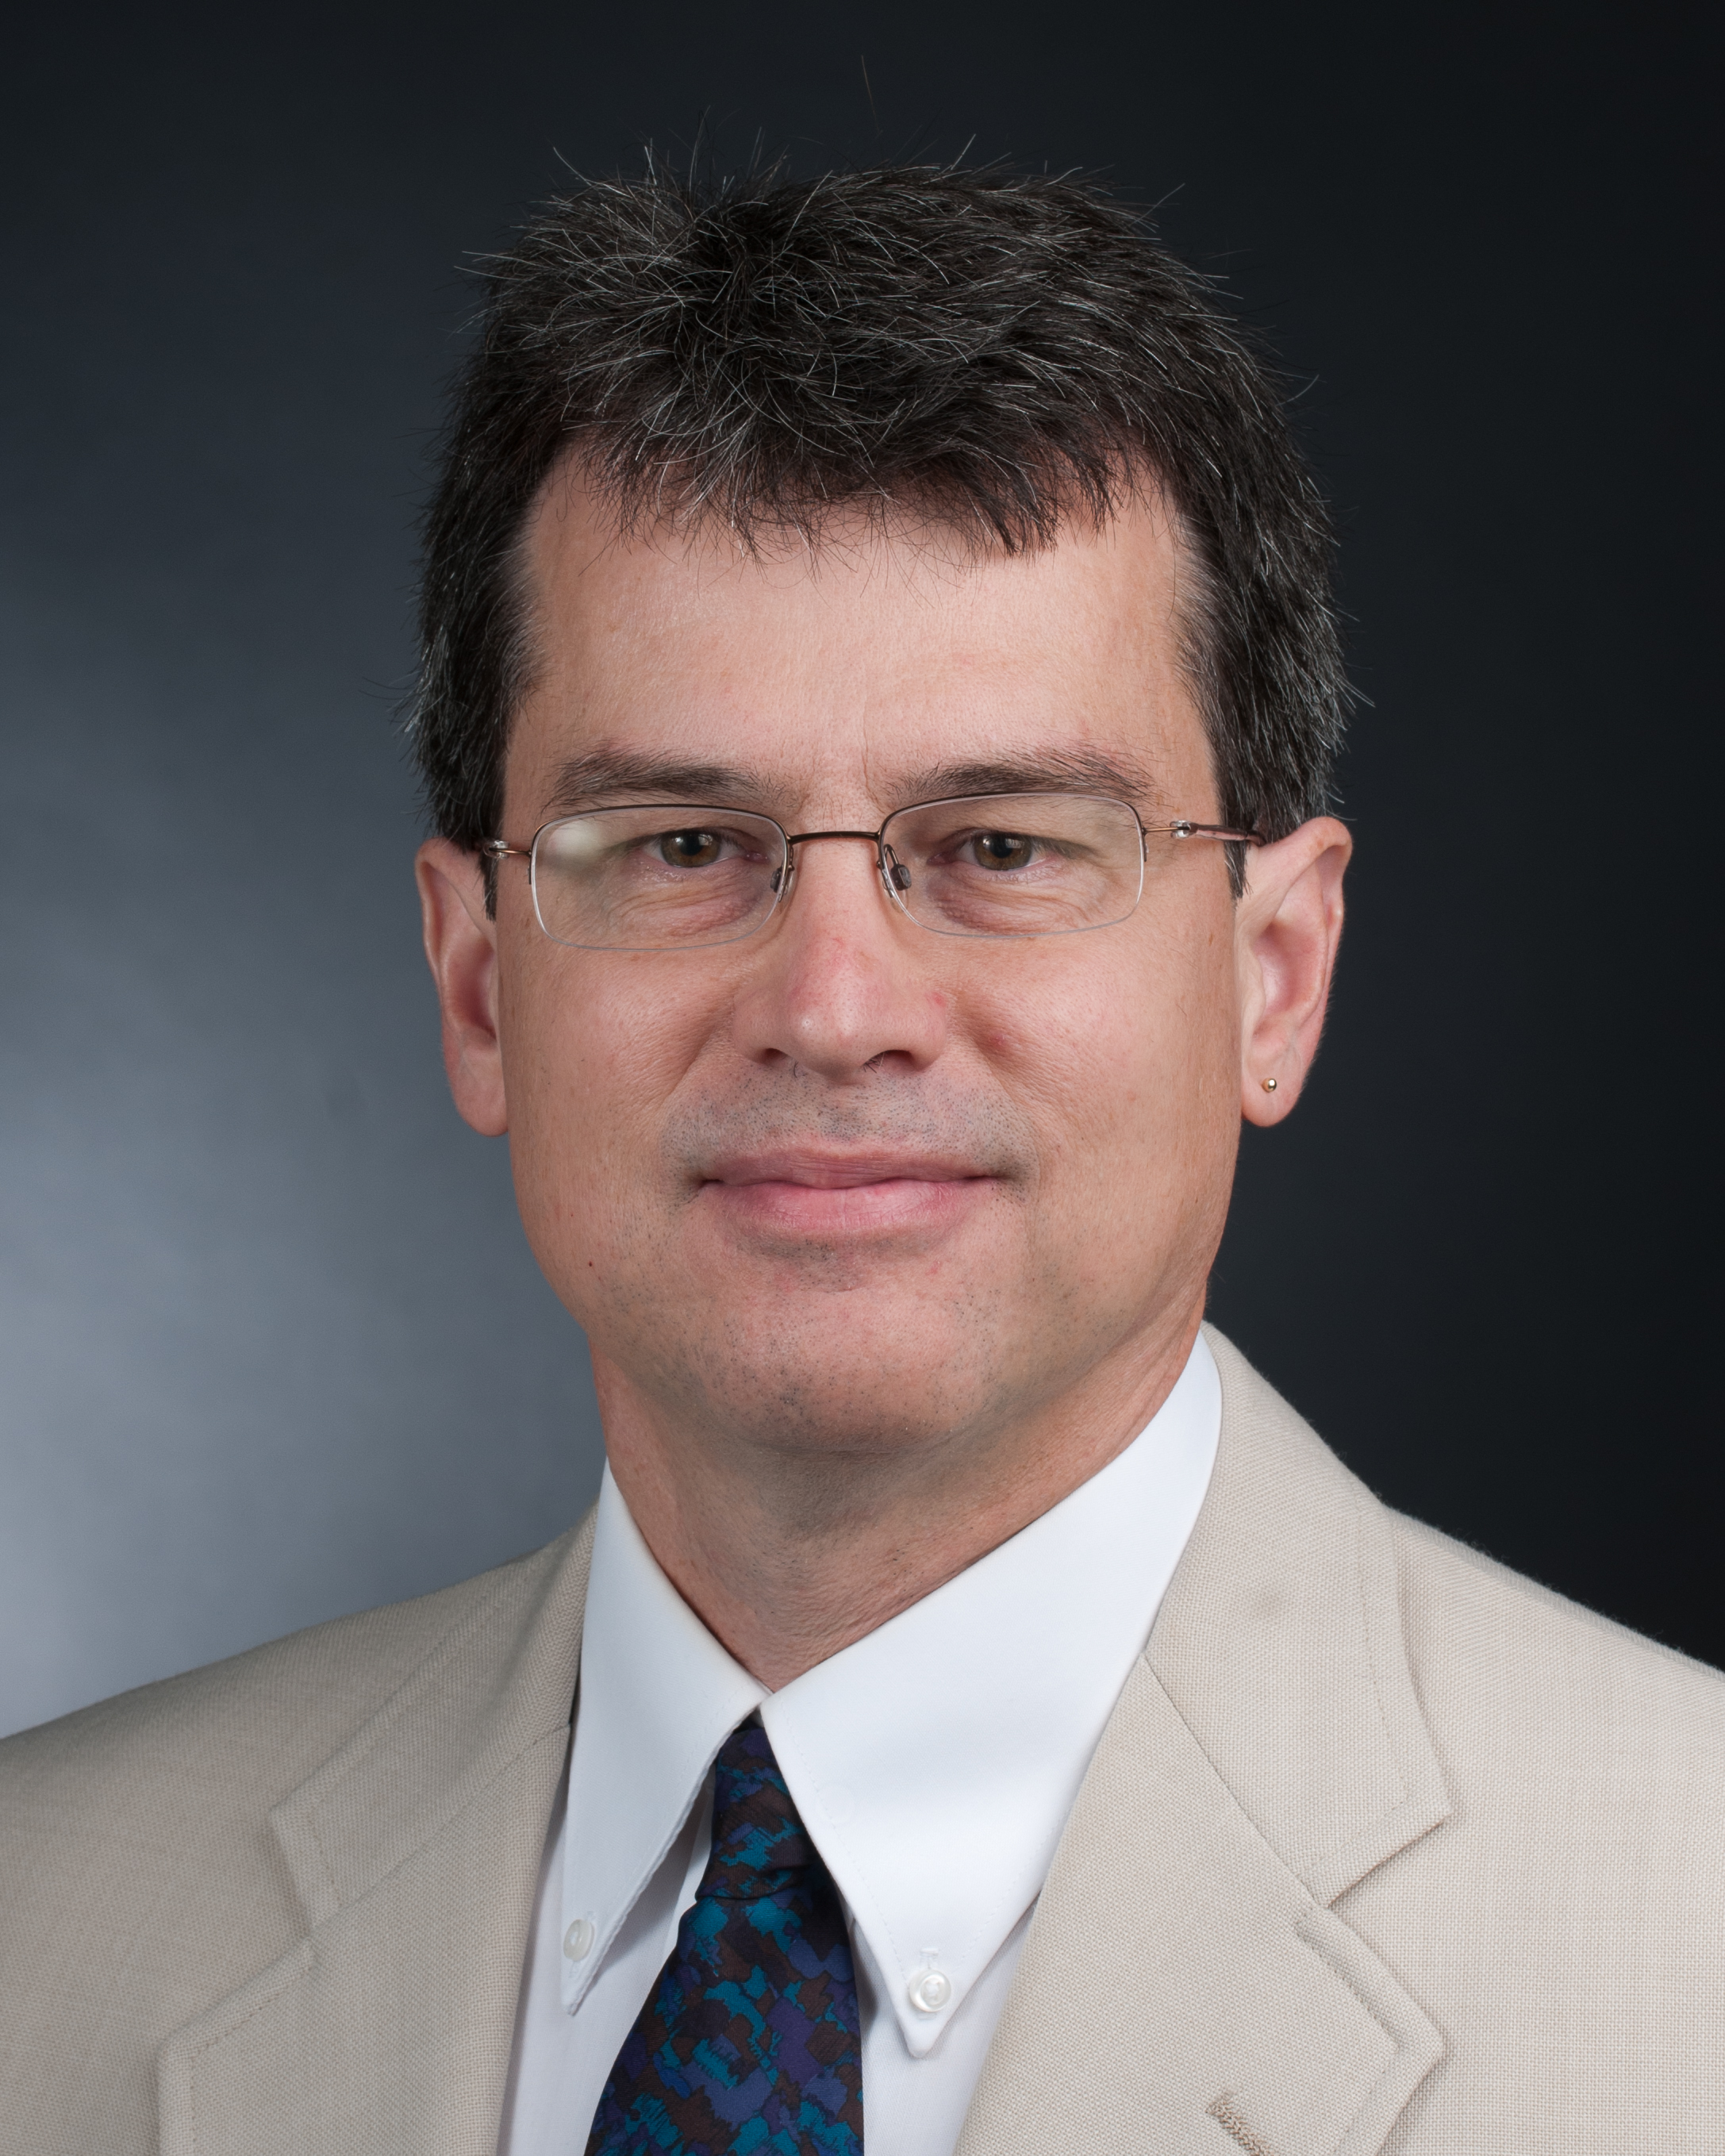 Dr. Michael Lizotte - Sustainability Officer at UNC Charlotte